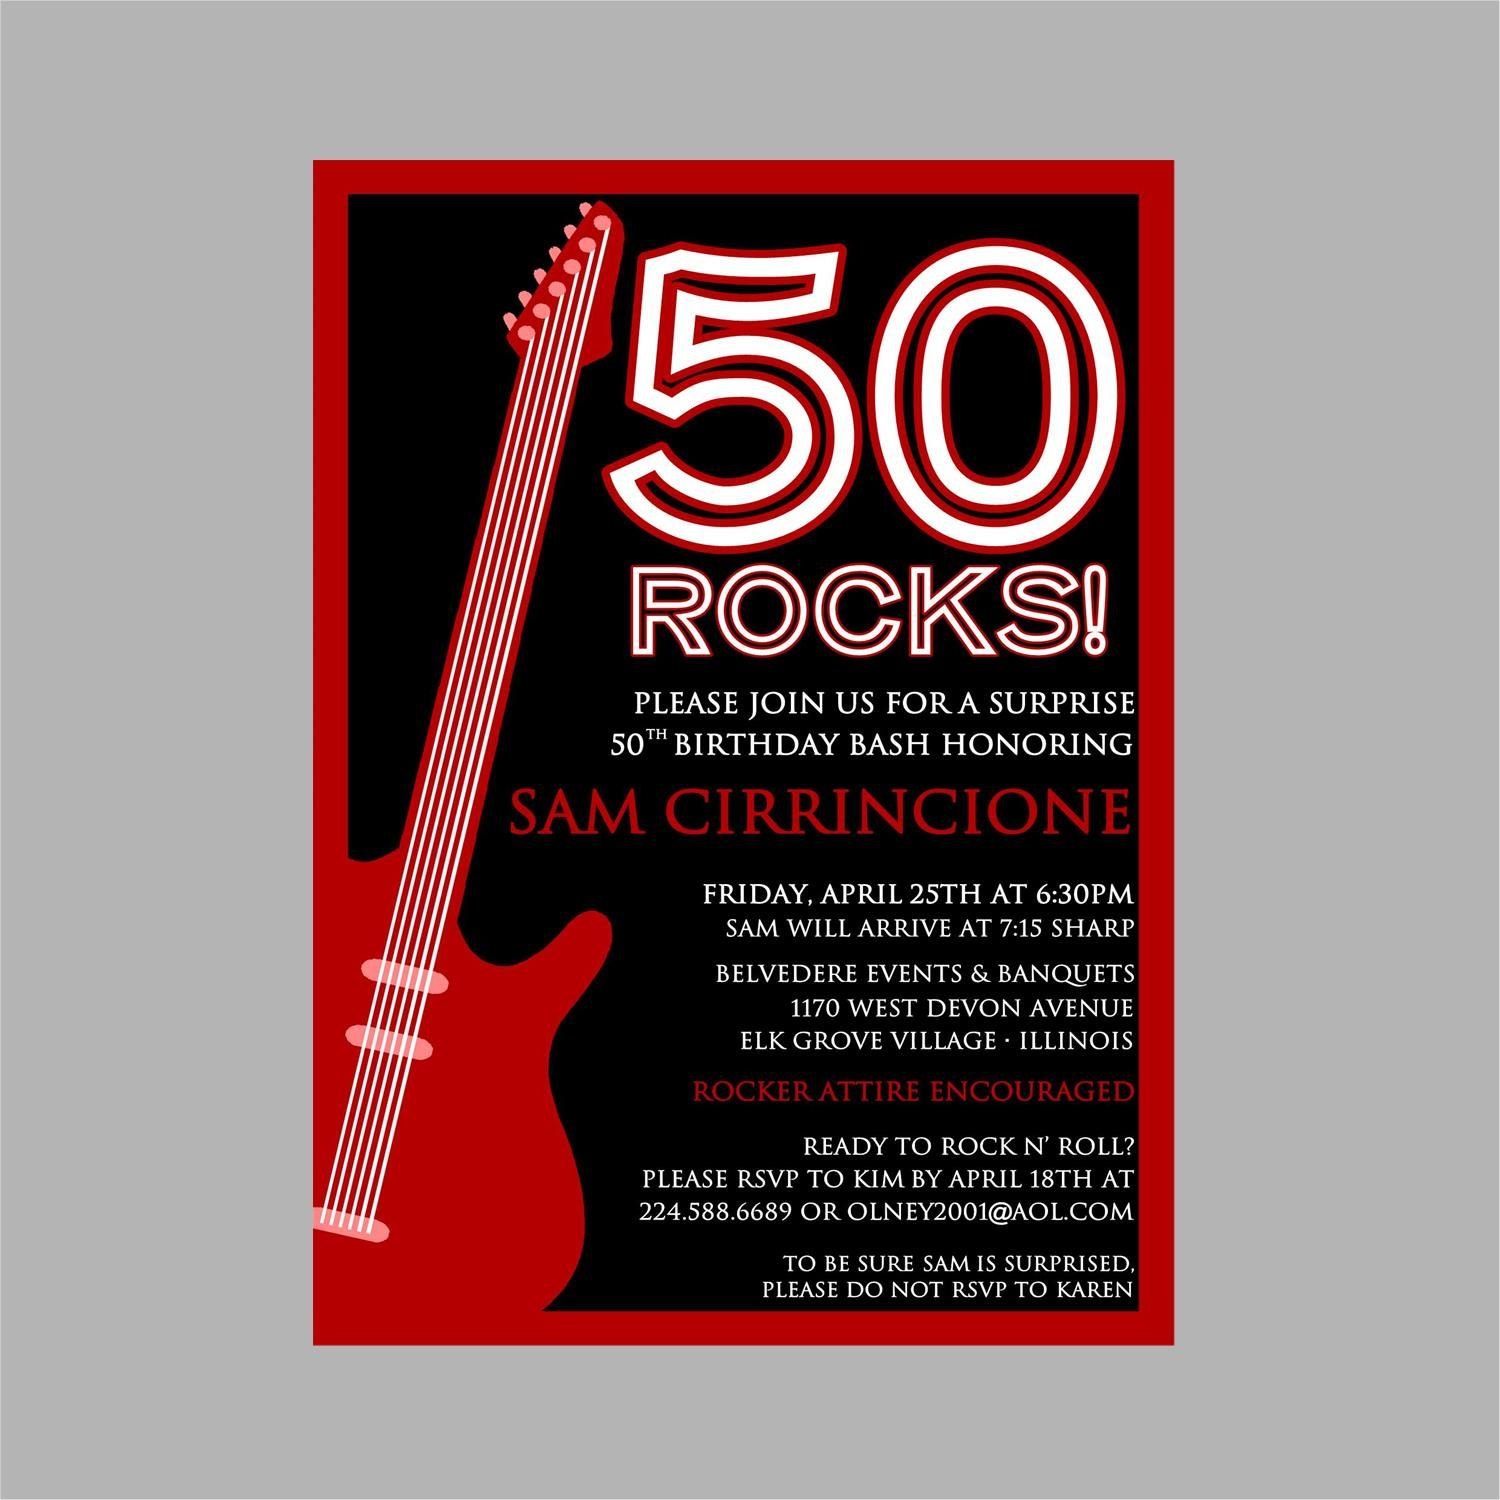 50th Birthday Rock N\' Roll Party Invitation | Party ideas ...